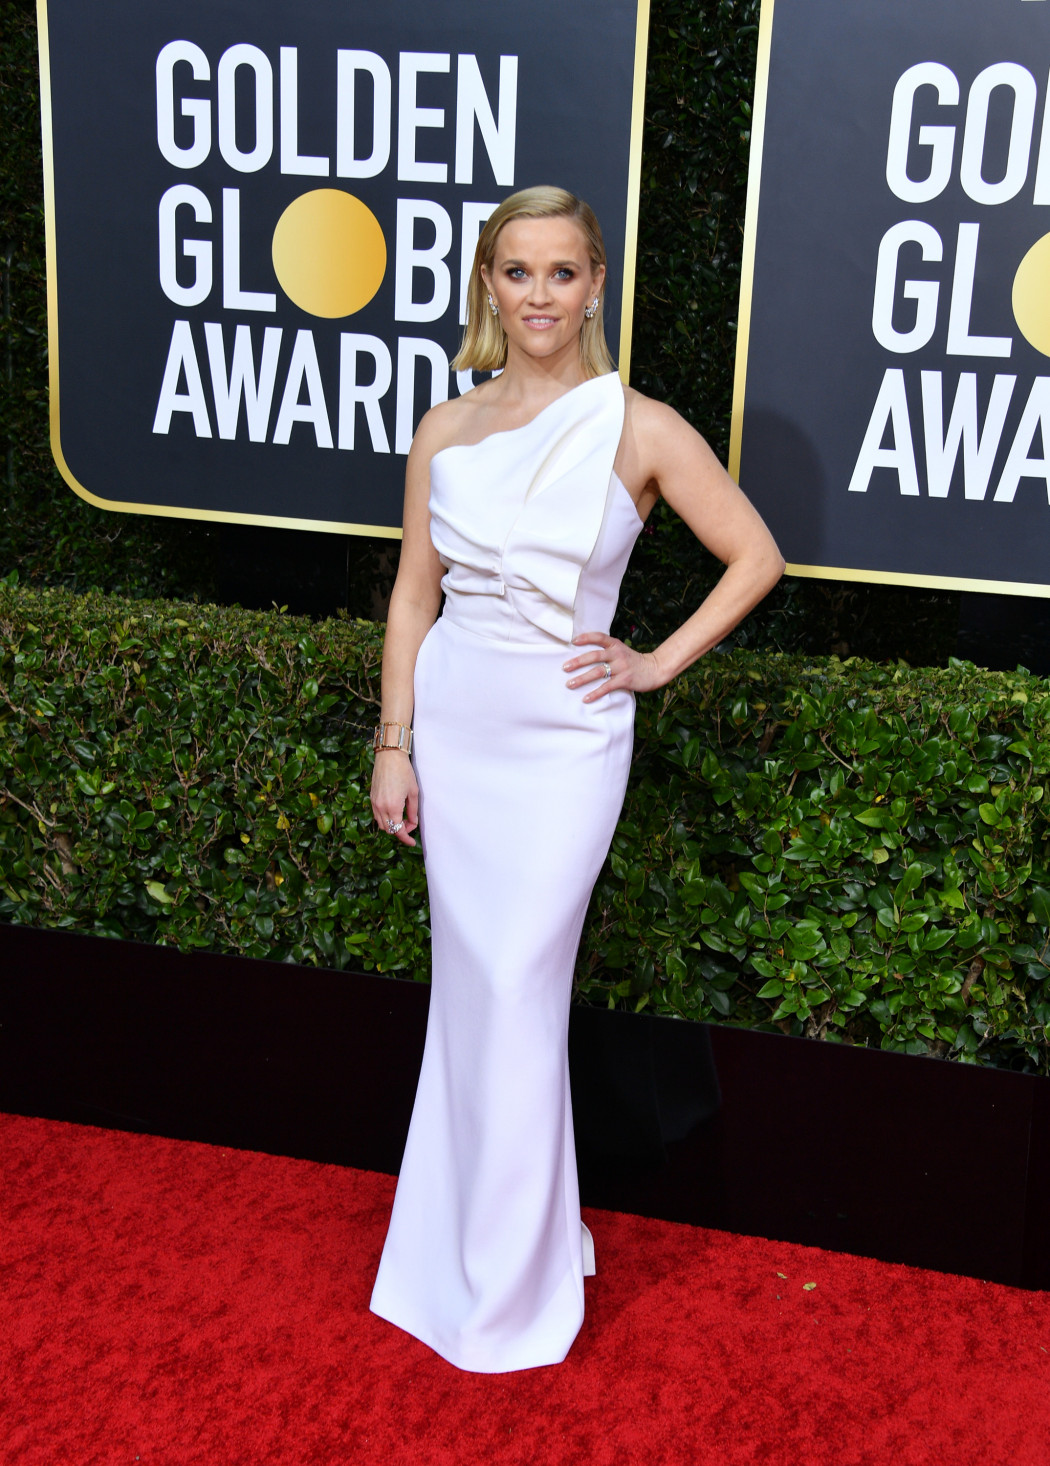 Golden Globes 2020 : les plus beaux looks du tapis rouge - 6